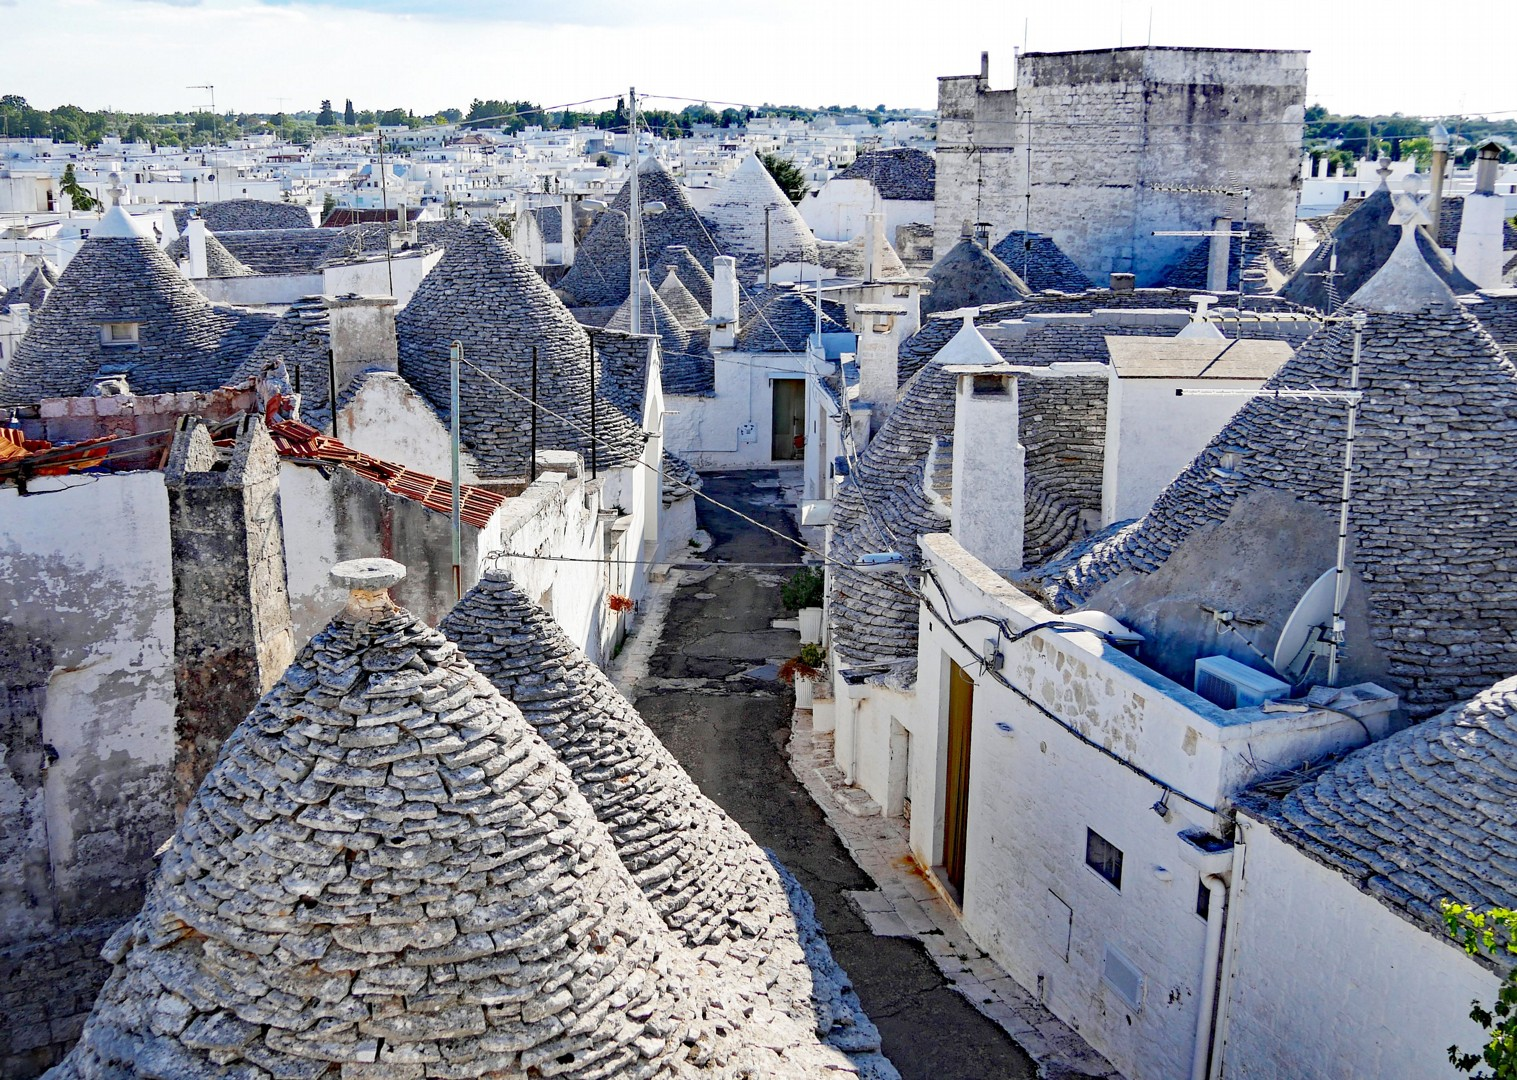 alberobello-rooftops-cycling-holiday-italy.jpg - Italy - Grand Traverse - North to South (17 days) - Guided Road Cycling Holiday - Italia Road Cycling